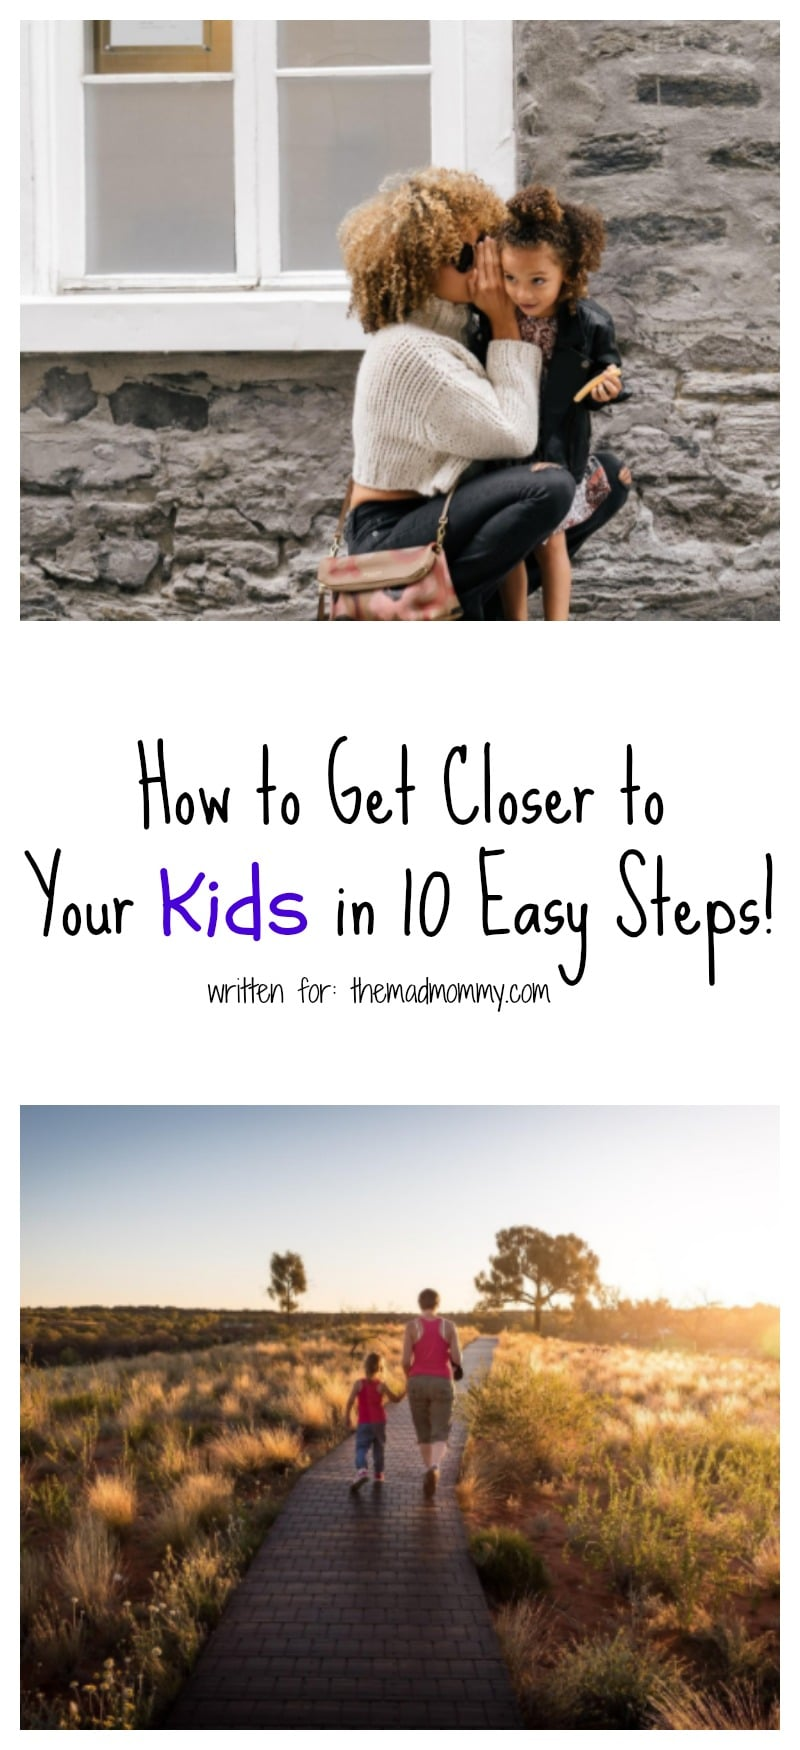 There is no one-size-fits-all approach to raising children, so here are some ideas on how to get closer to your kids.